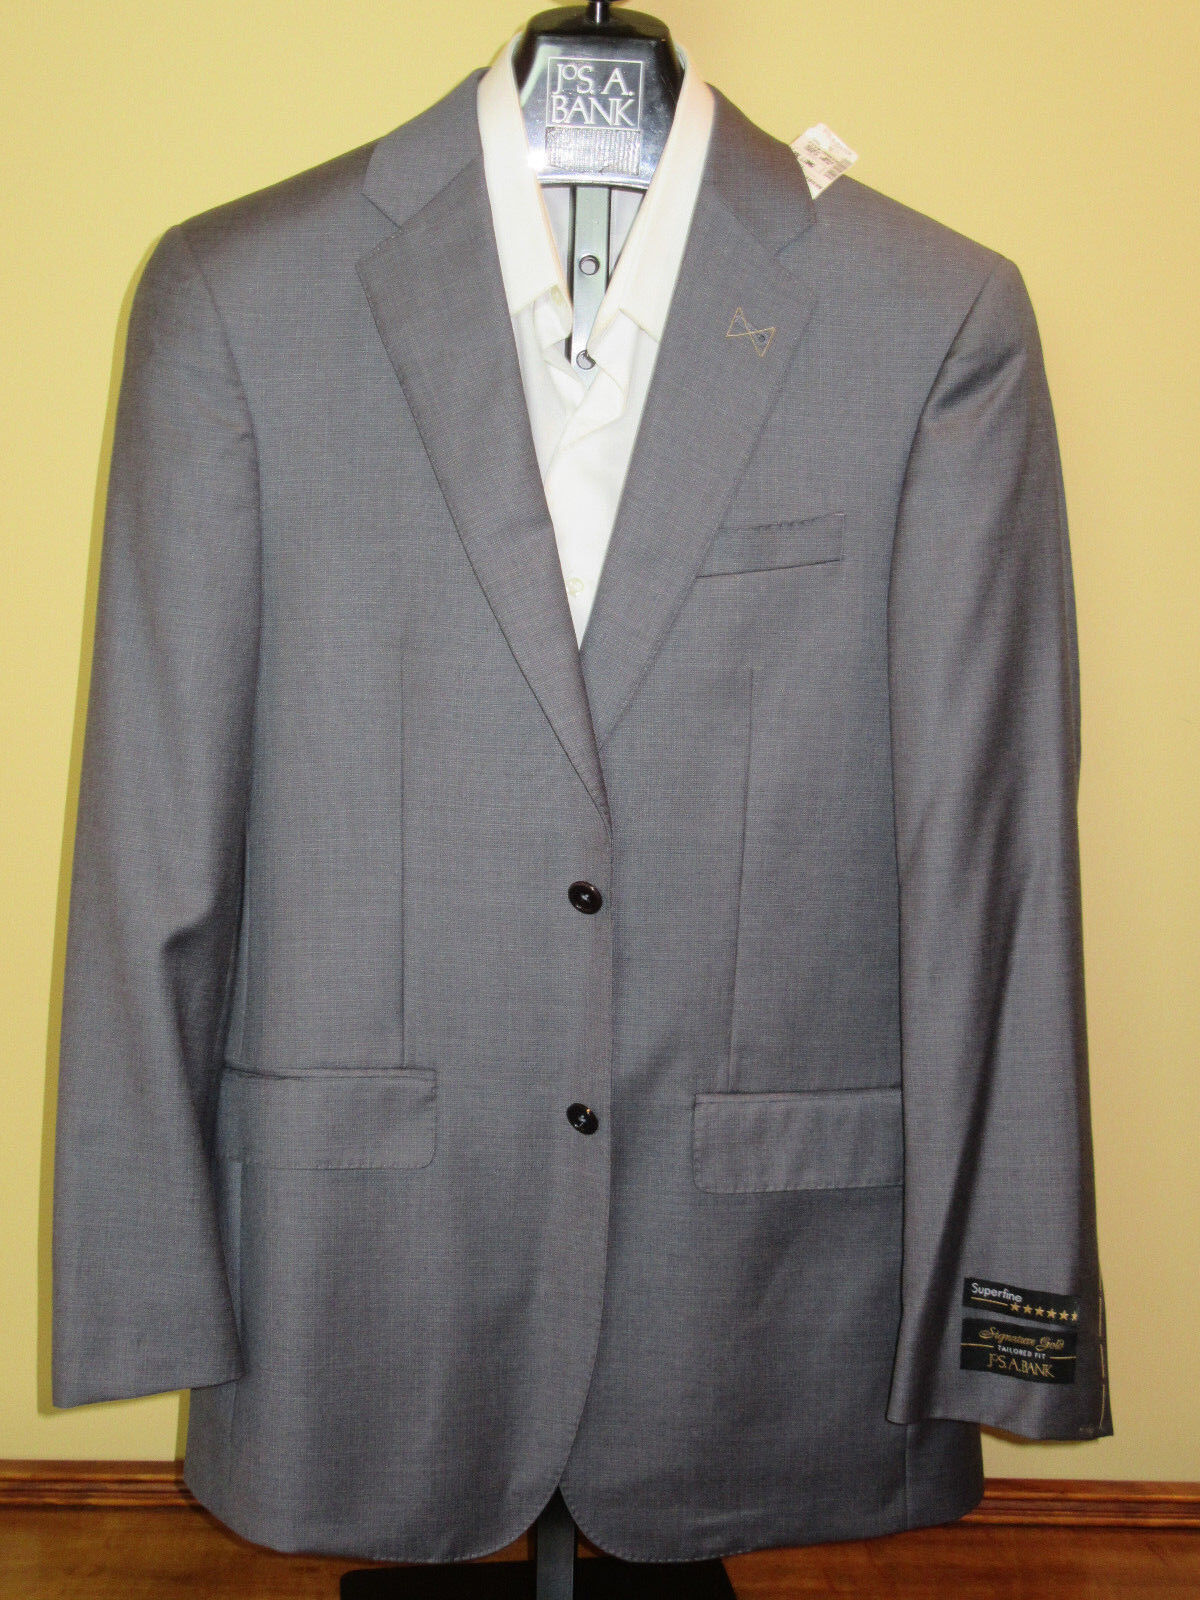 1295 new Jos A Bank Signature Gold Grau pattern suit 38 L 32 W tailoROT fit